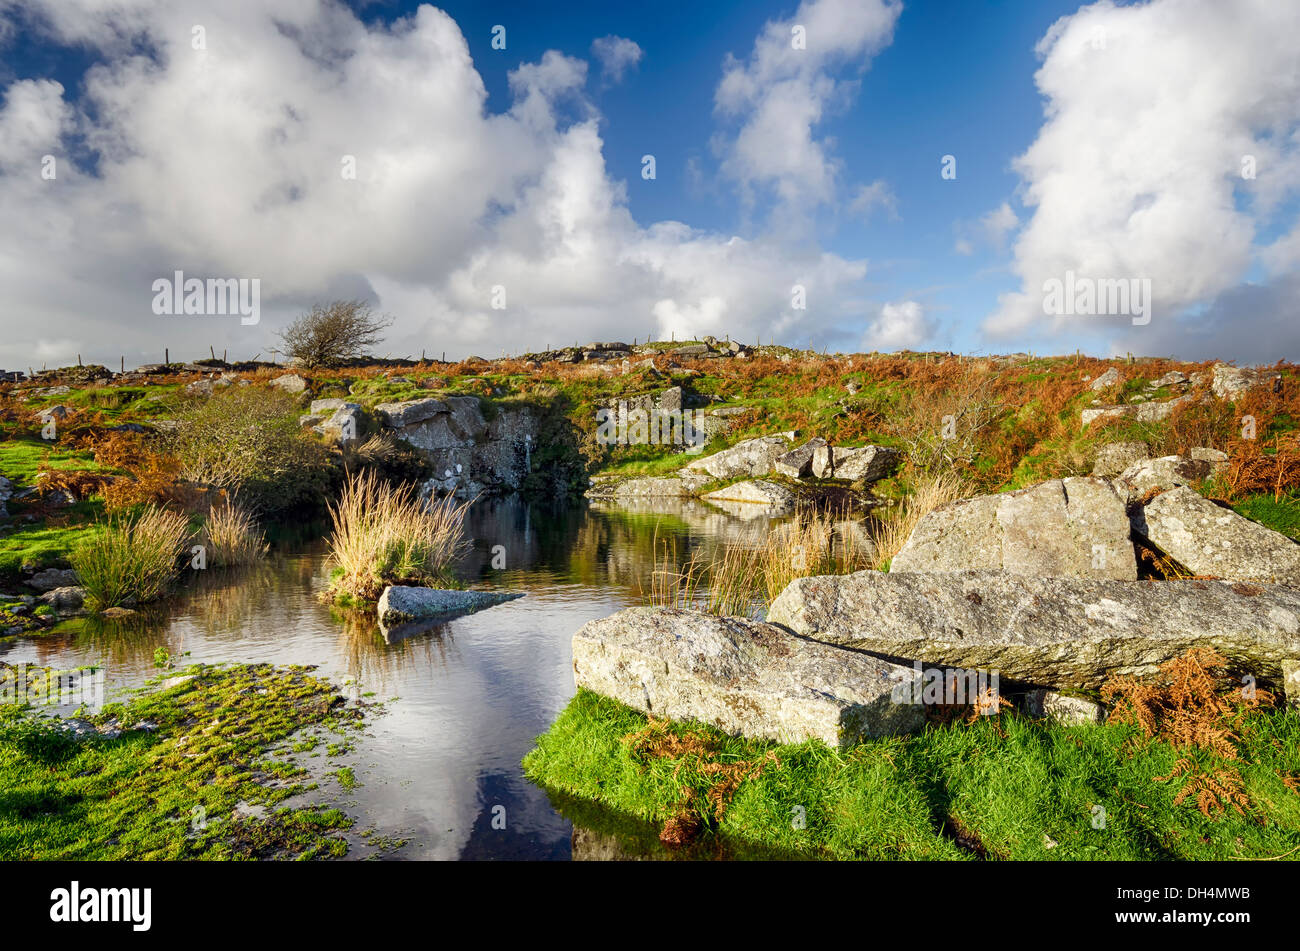 Carbilly Quarry on Bodmin Moor in Cornwall - Stock Image